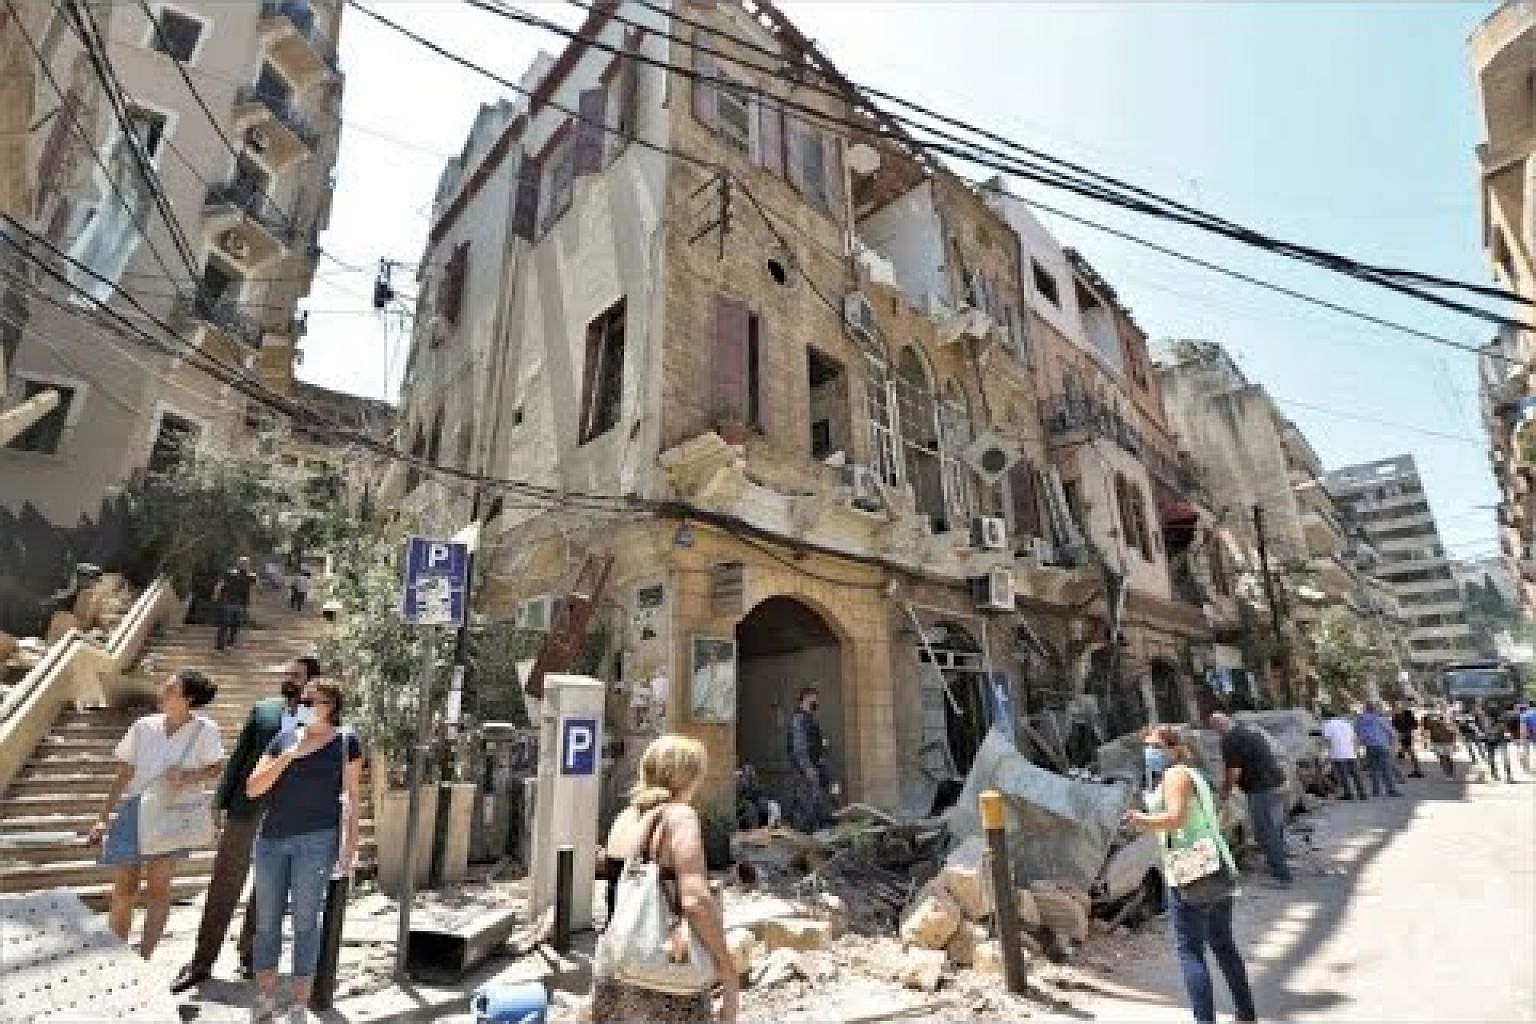 Beirut reels and anger grows in mass devastation